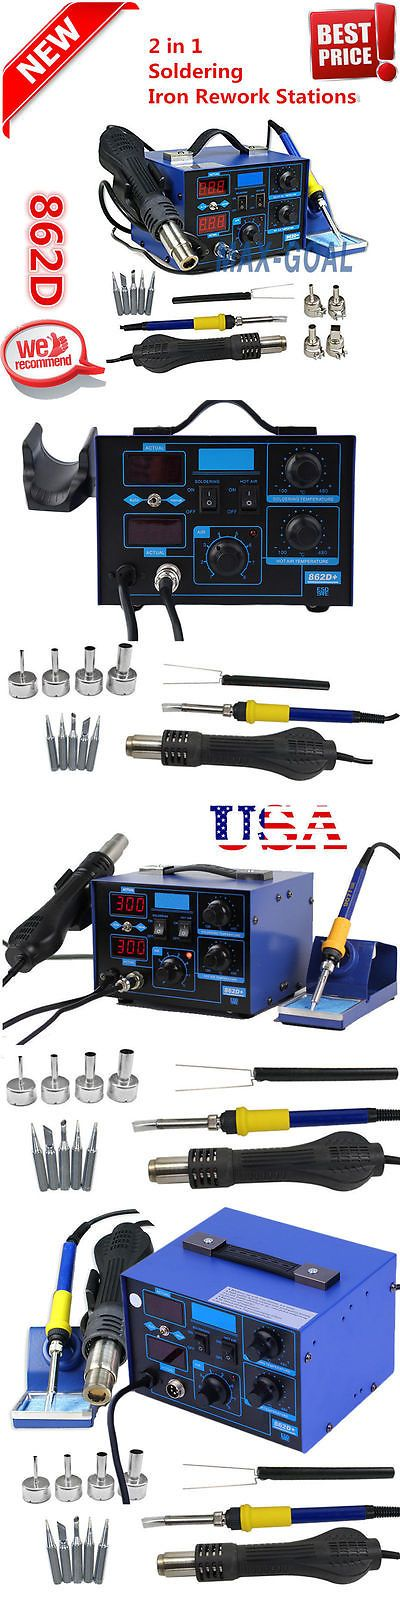 Heat Guns 66797: 2 In1 862D+ 110V Smd Rework Soldering Station+Soldering Iron Welder Hot Air Gun! -> BUY IT NOW ONLY: $45.83 on eBay!